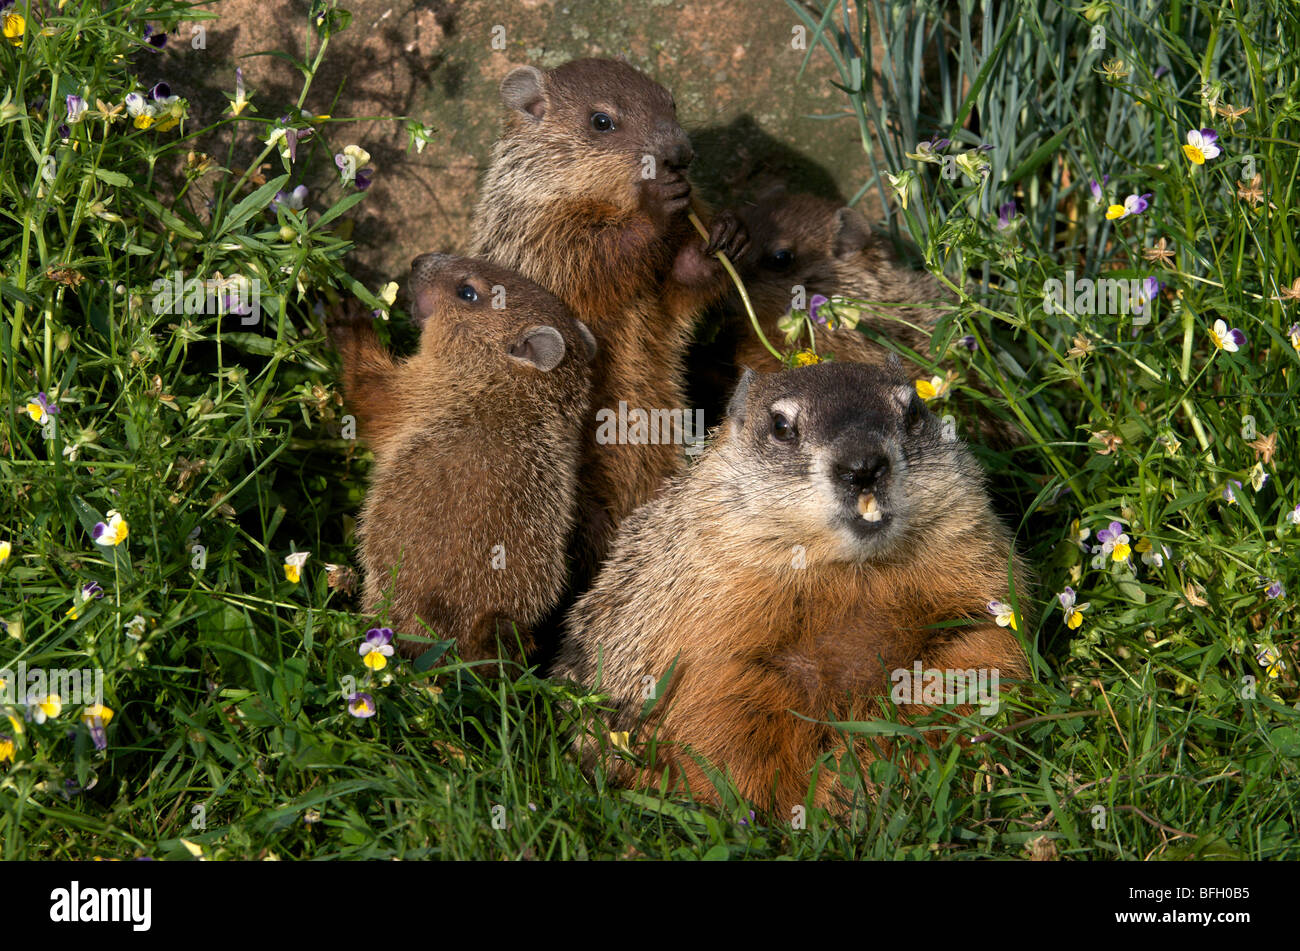 Mother and baby woodchucks ((Marmota monax), North America - Stock Image